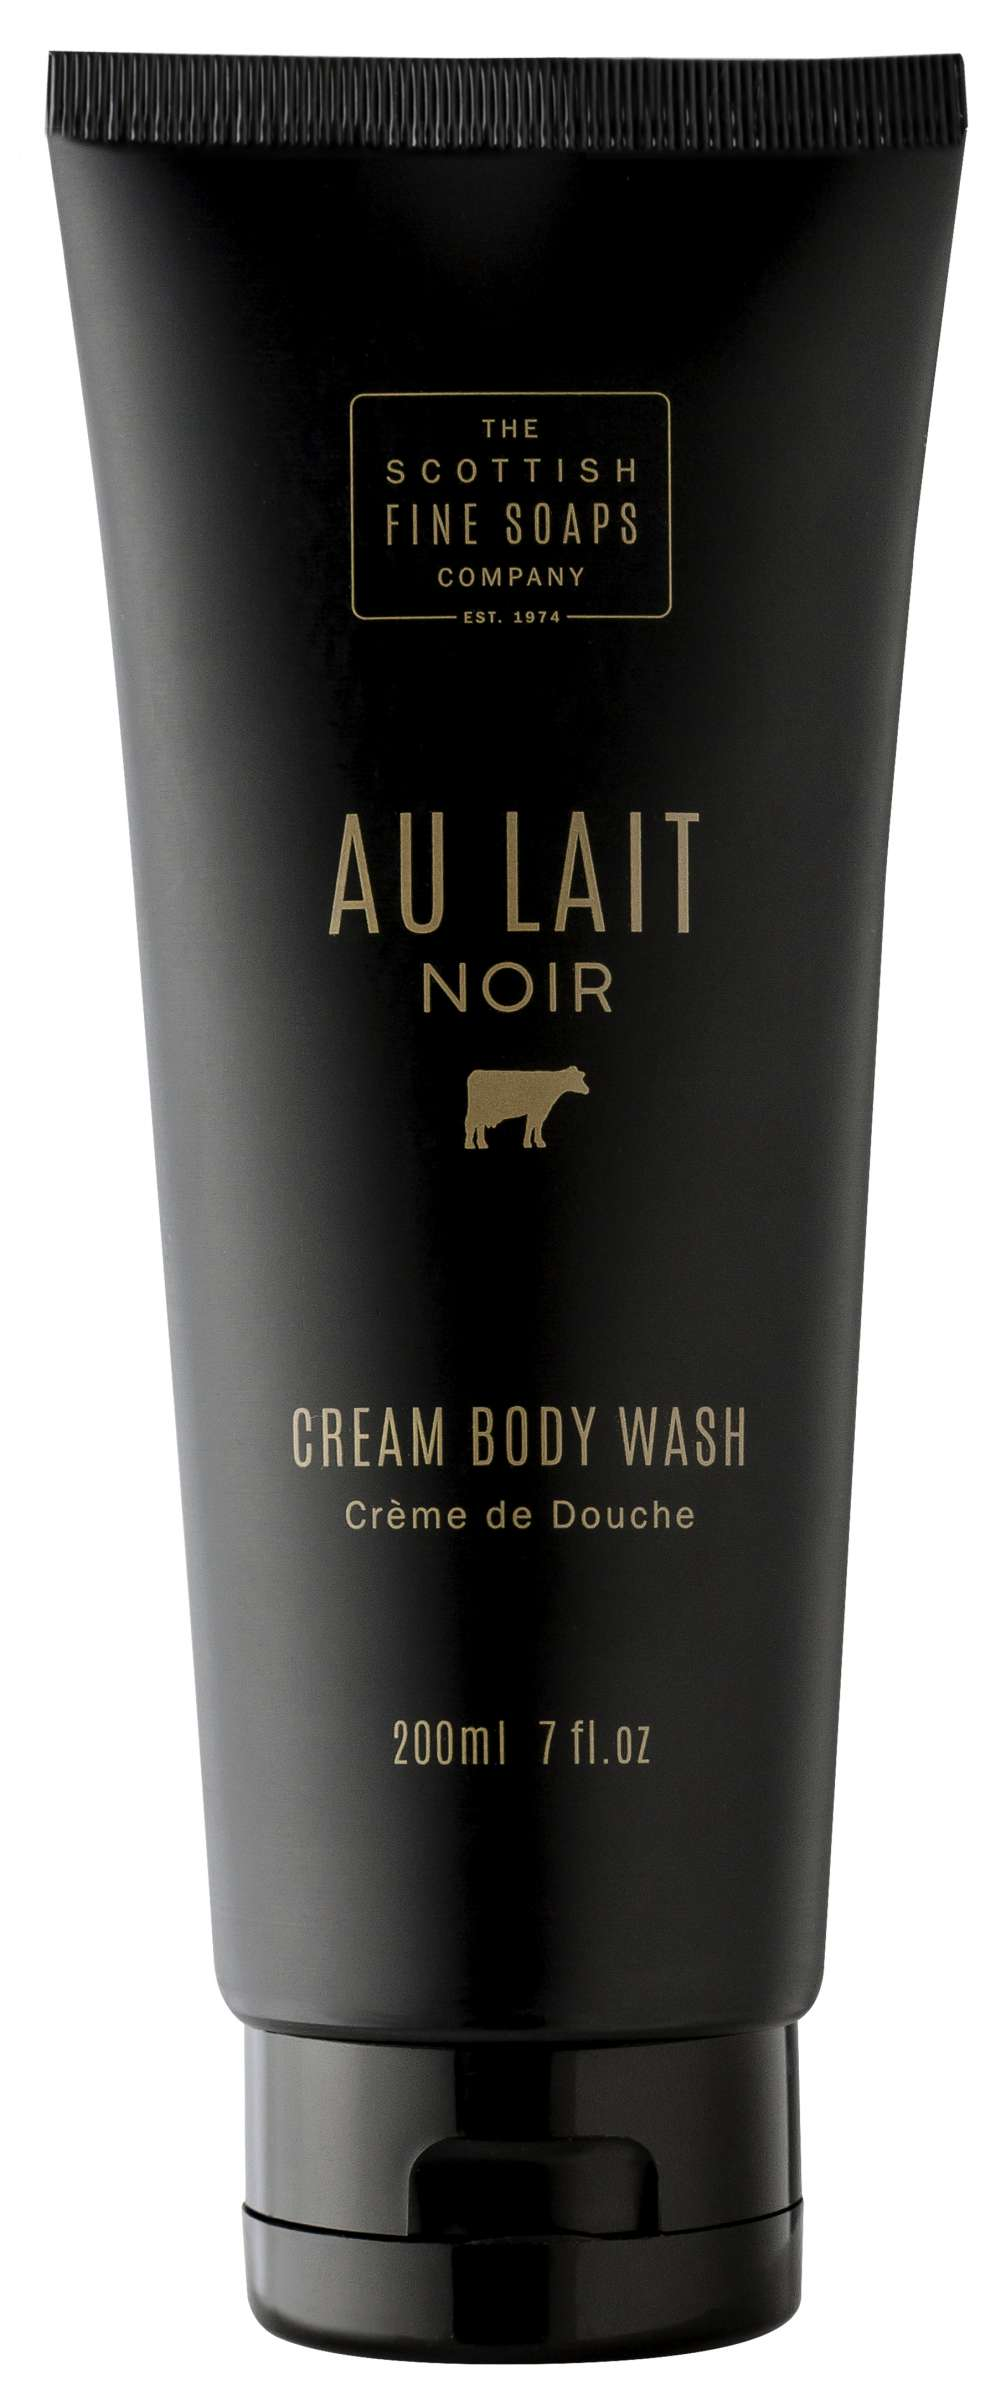 A00271 au lait noir body wash 200ml